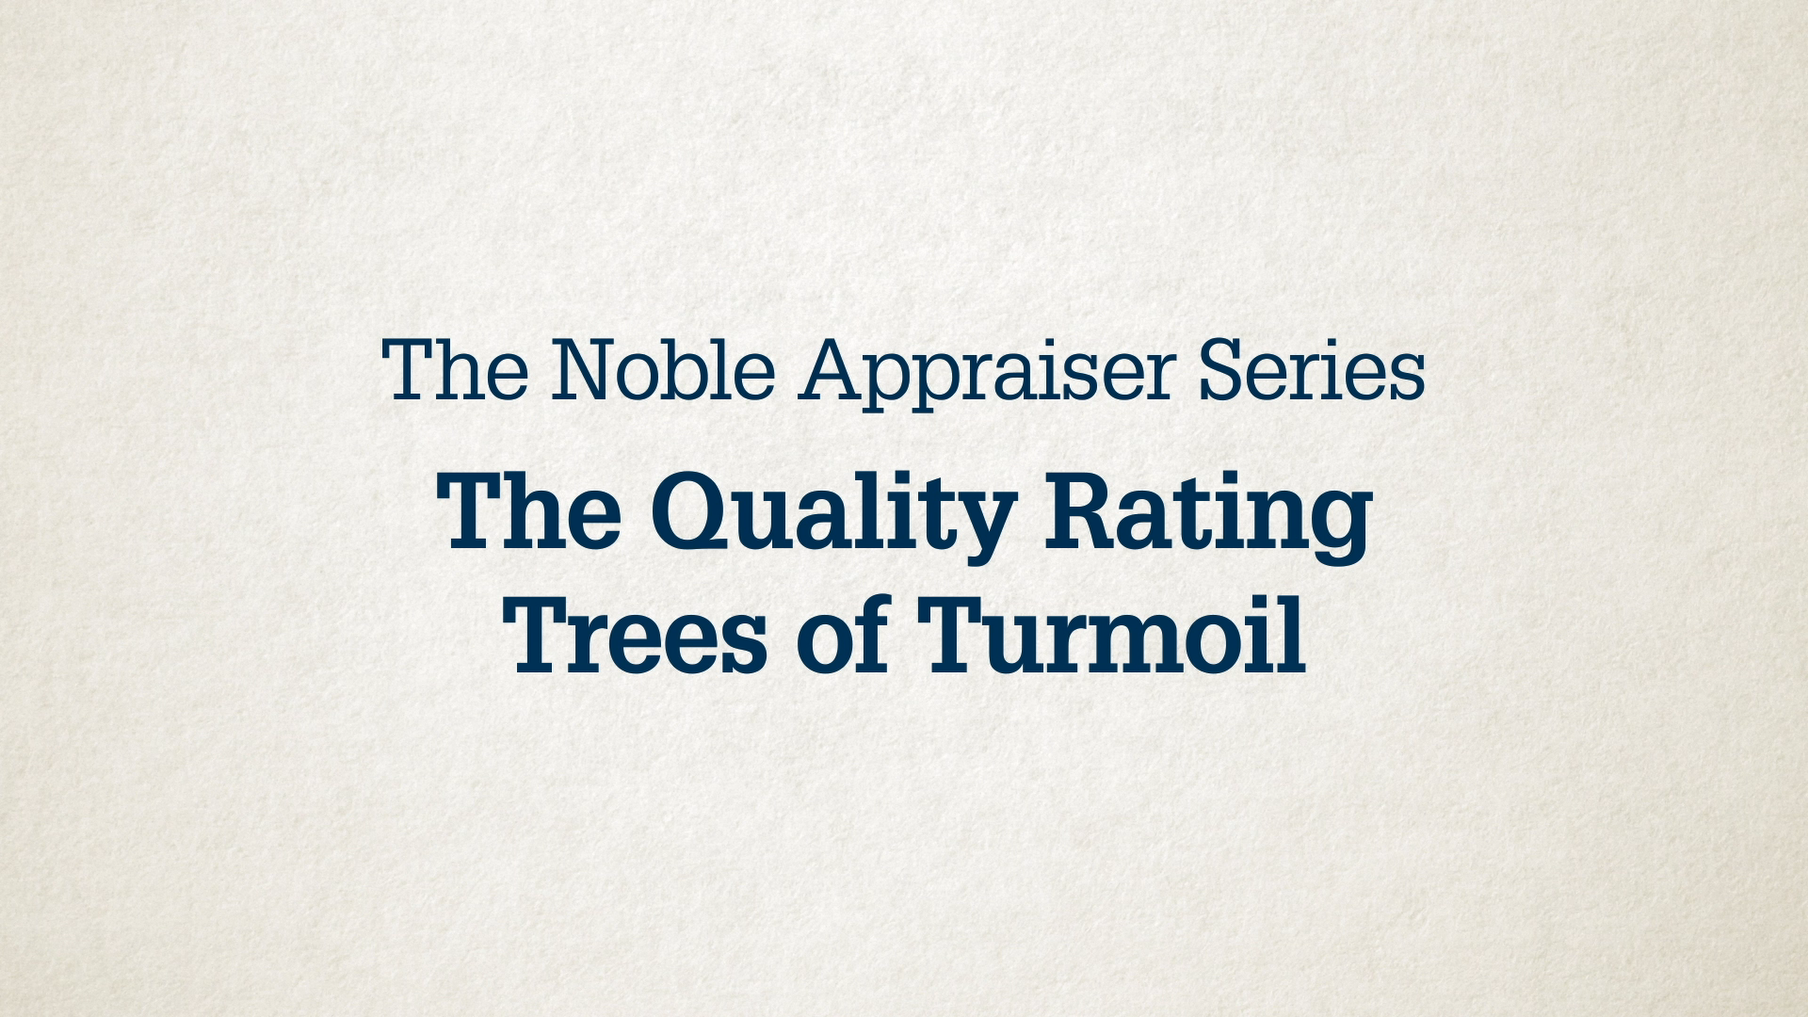 appraisers noble series quality video image